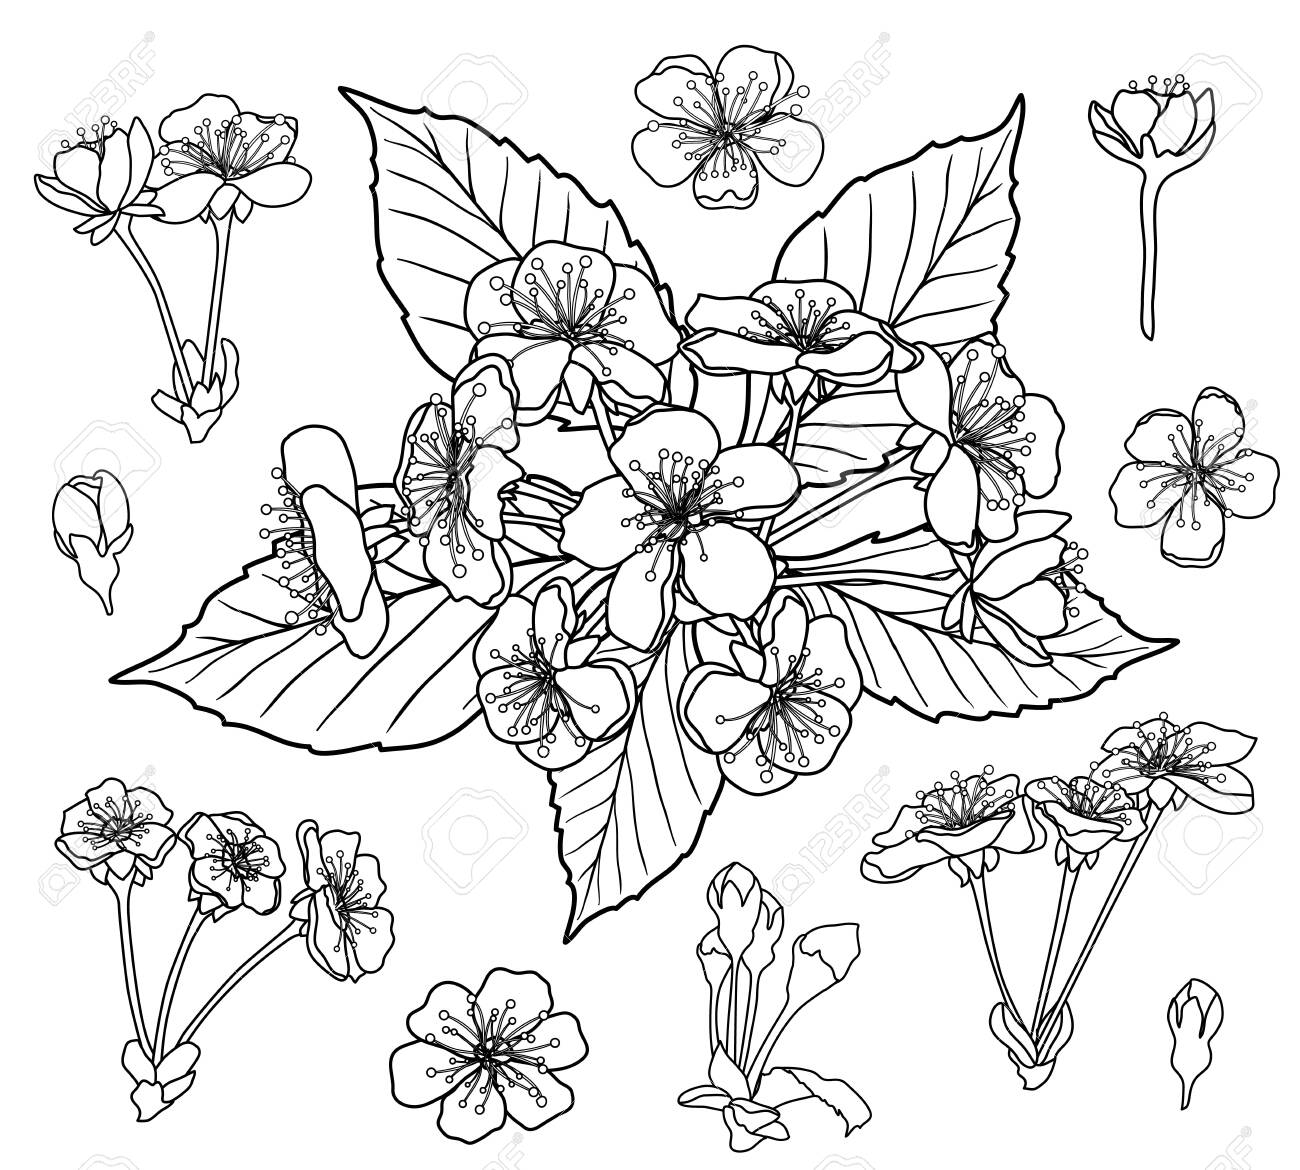 Black and white cherry flowers set for coloring book page vector - 121742066